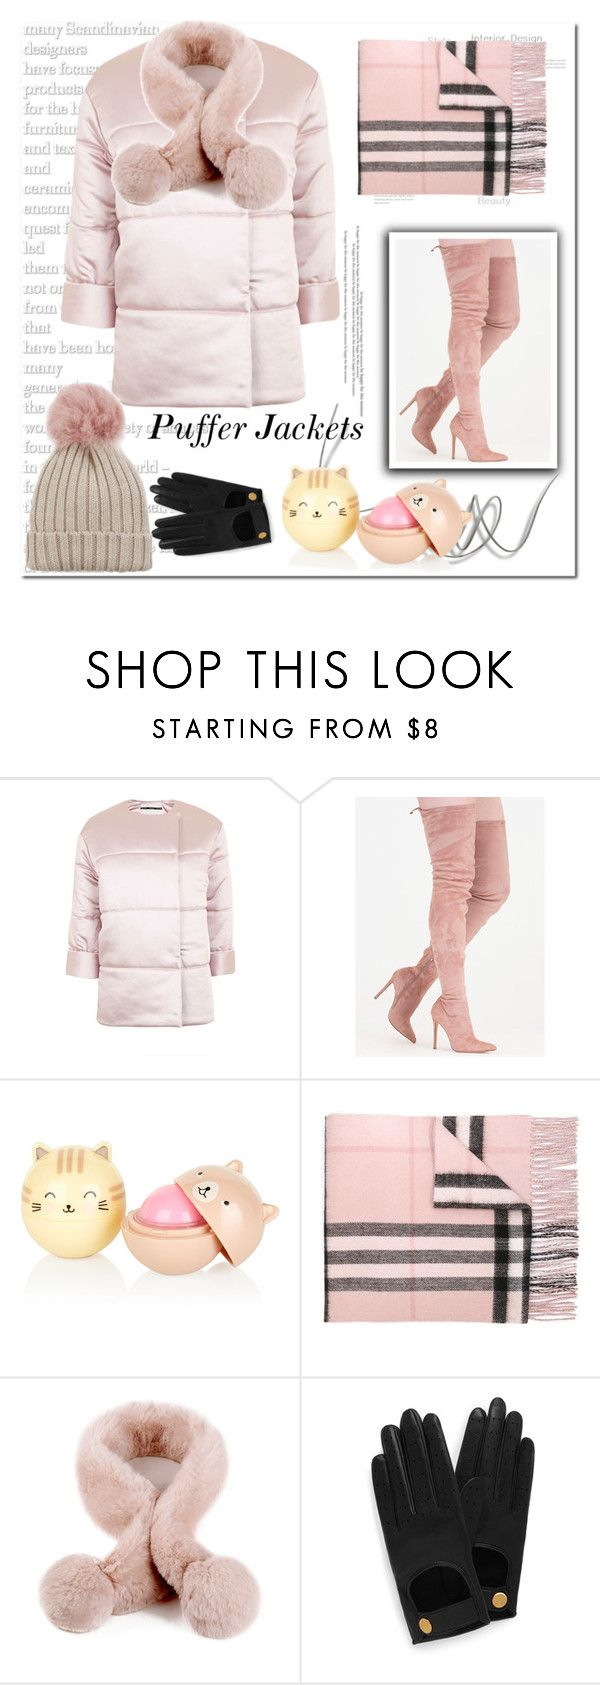 """""""Puffer Jackets"""" by ilona-828 ❤ liked on Polyvore featuring Topshop, Burberry, Mulberry, Jocelyn, polyvoreeditorial and puffers"""